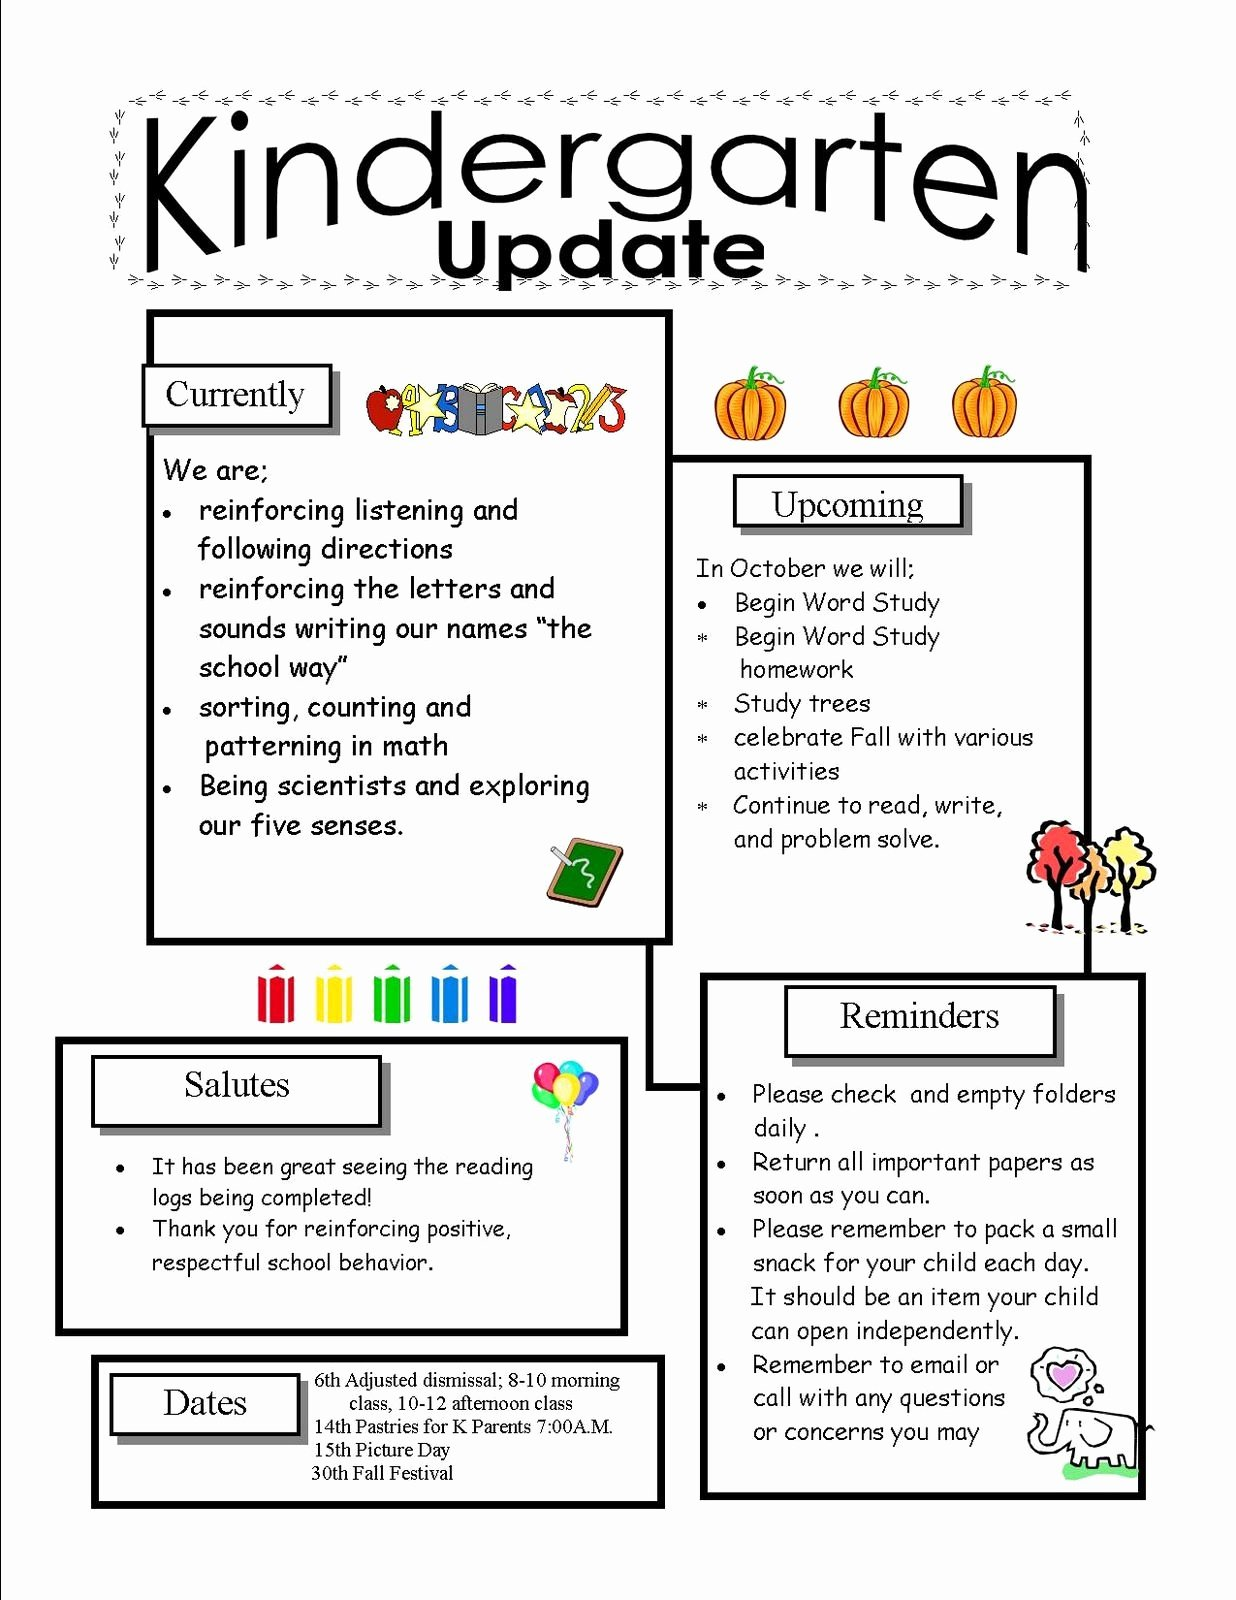 Free Preschool Newsletter Templates Best Of Kindergarten Newsletter Templates for Free